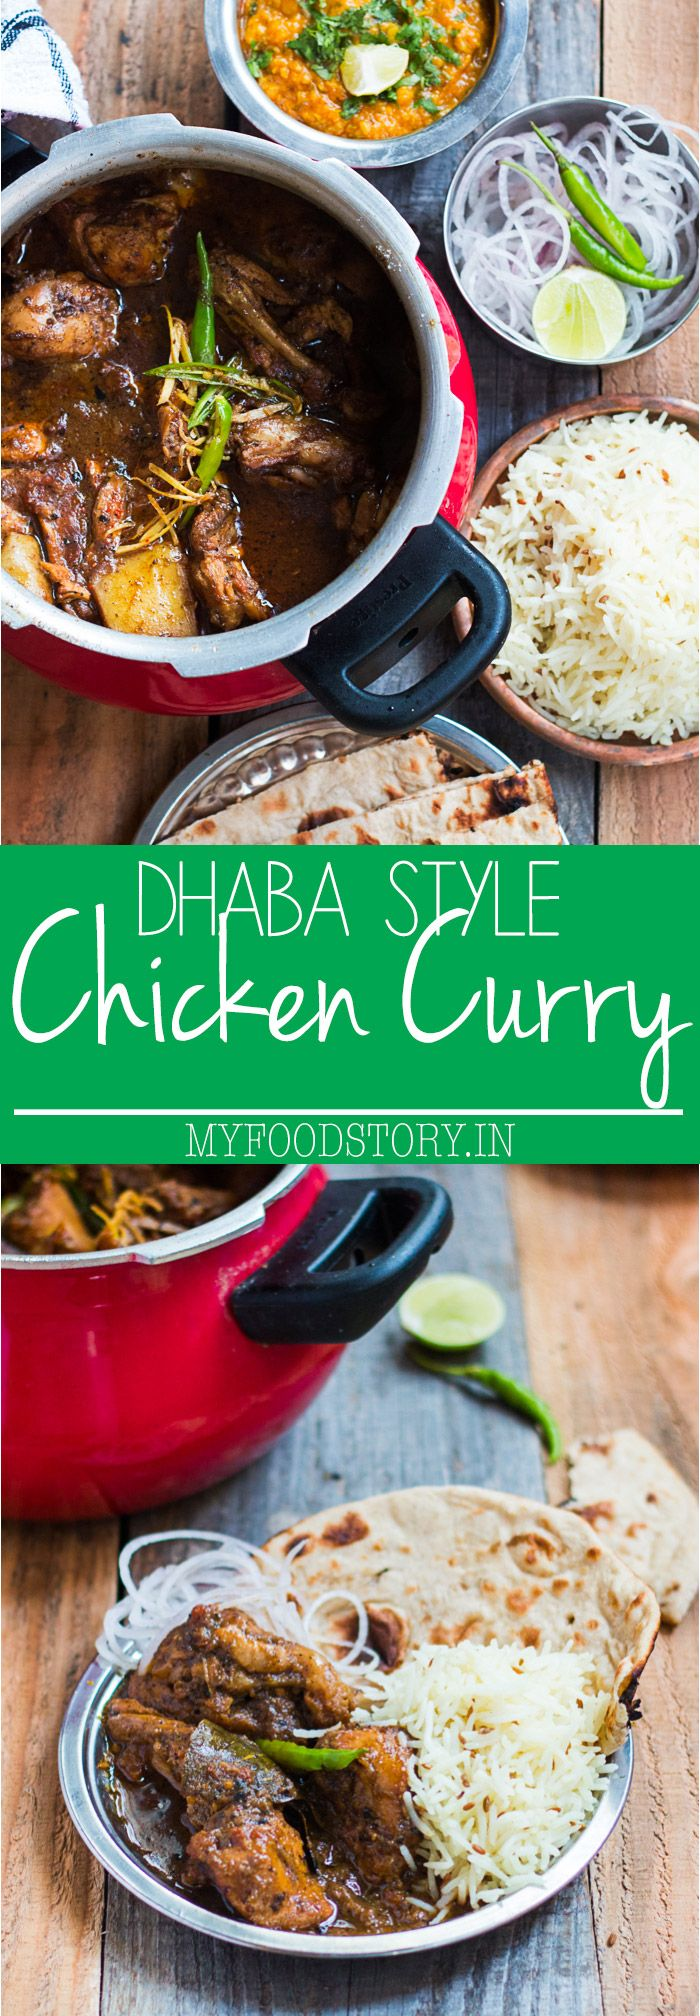 The best north indian chicken curry recipe, inspired by roadside dhabas in India which are famous for their home style cooking. Made with ground spices, onions and tomatoes and cooked slowly for a really hot, spicy curry. Can be made in an electric pressure cooker or Instant Pot if you are in a hurry. via @my_foodstory